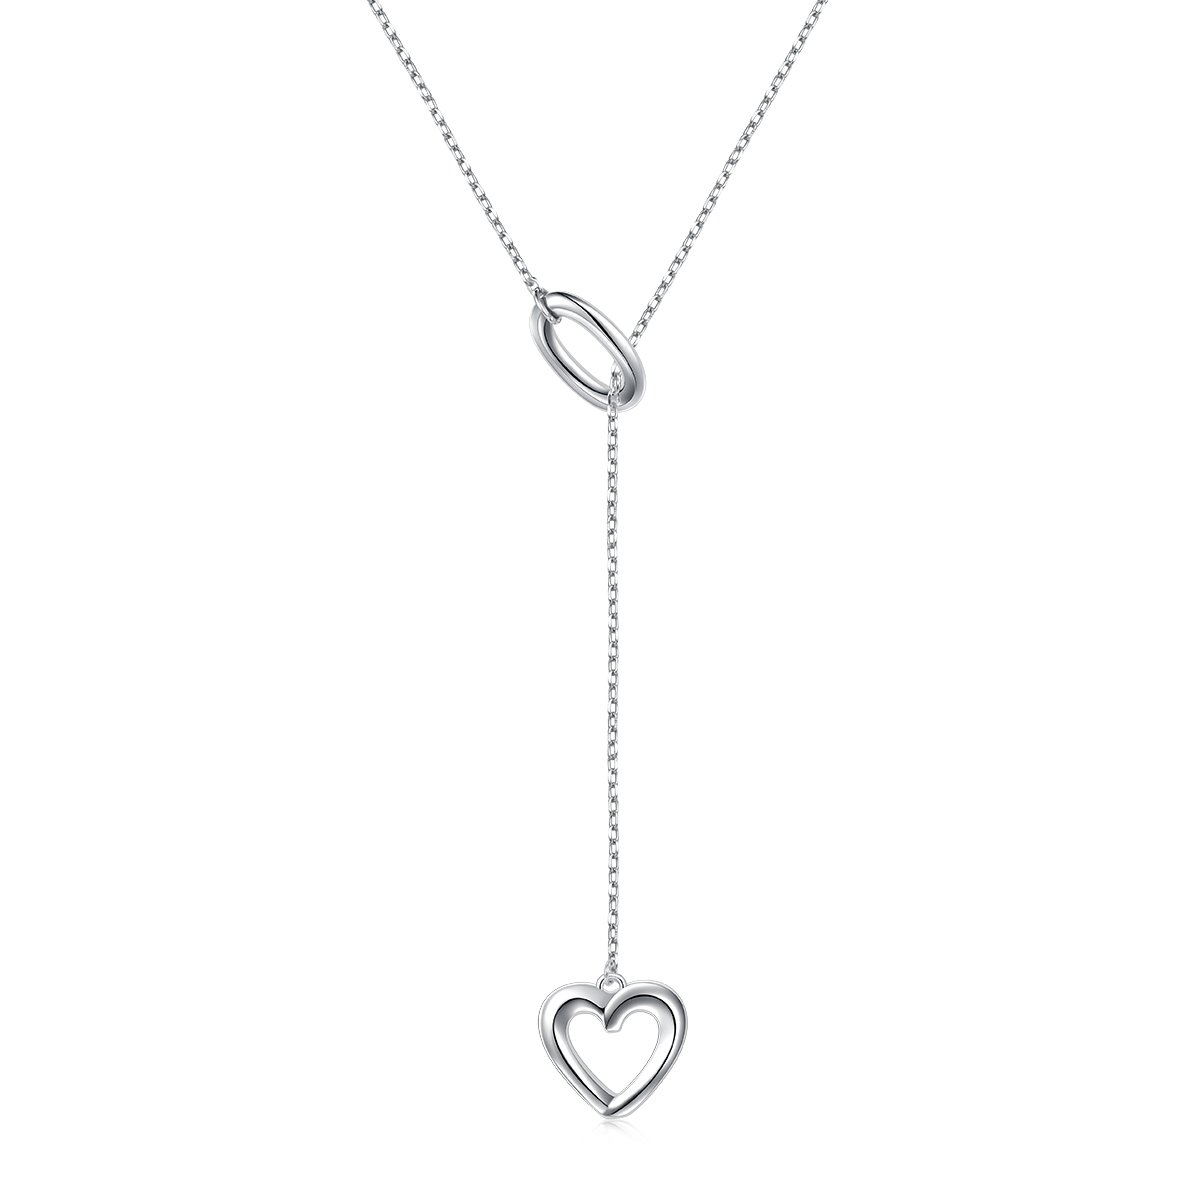 LINLIN FINE JEWELRY Long Necklace 925 Sterling Silver Adjustable Oval Heart Y Shaped Lariat Necklace for Women, 20 + 2 inches